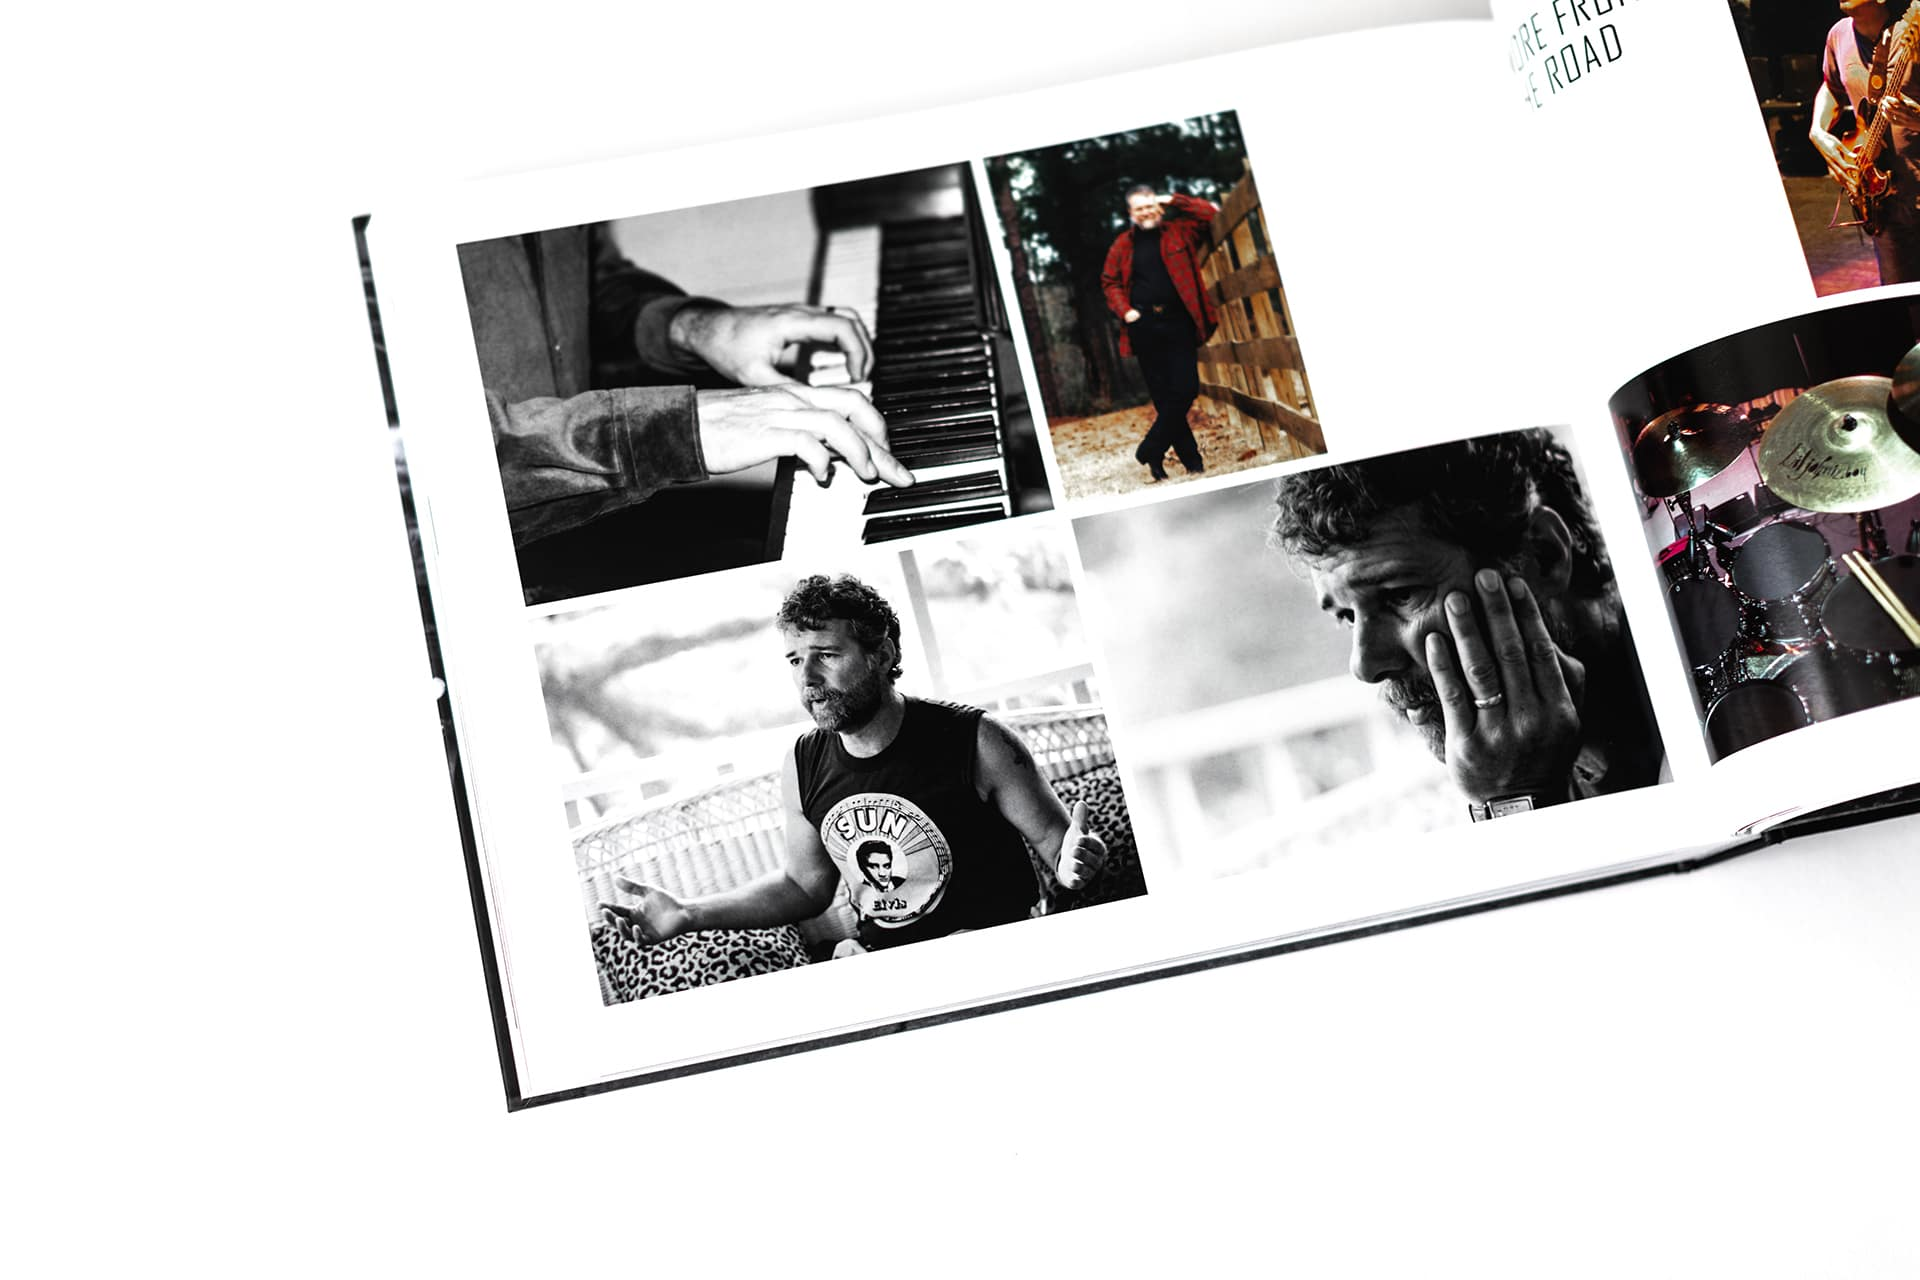 pictures of band members from the book